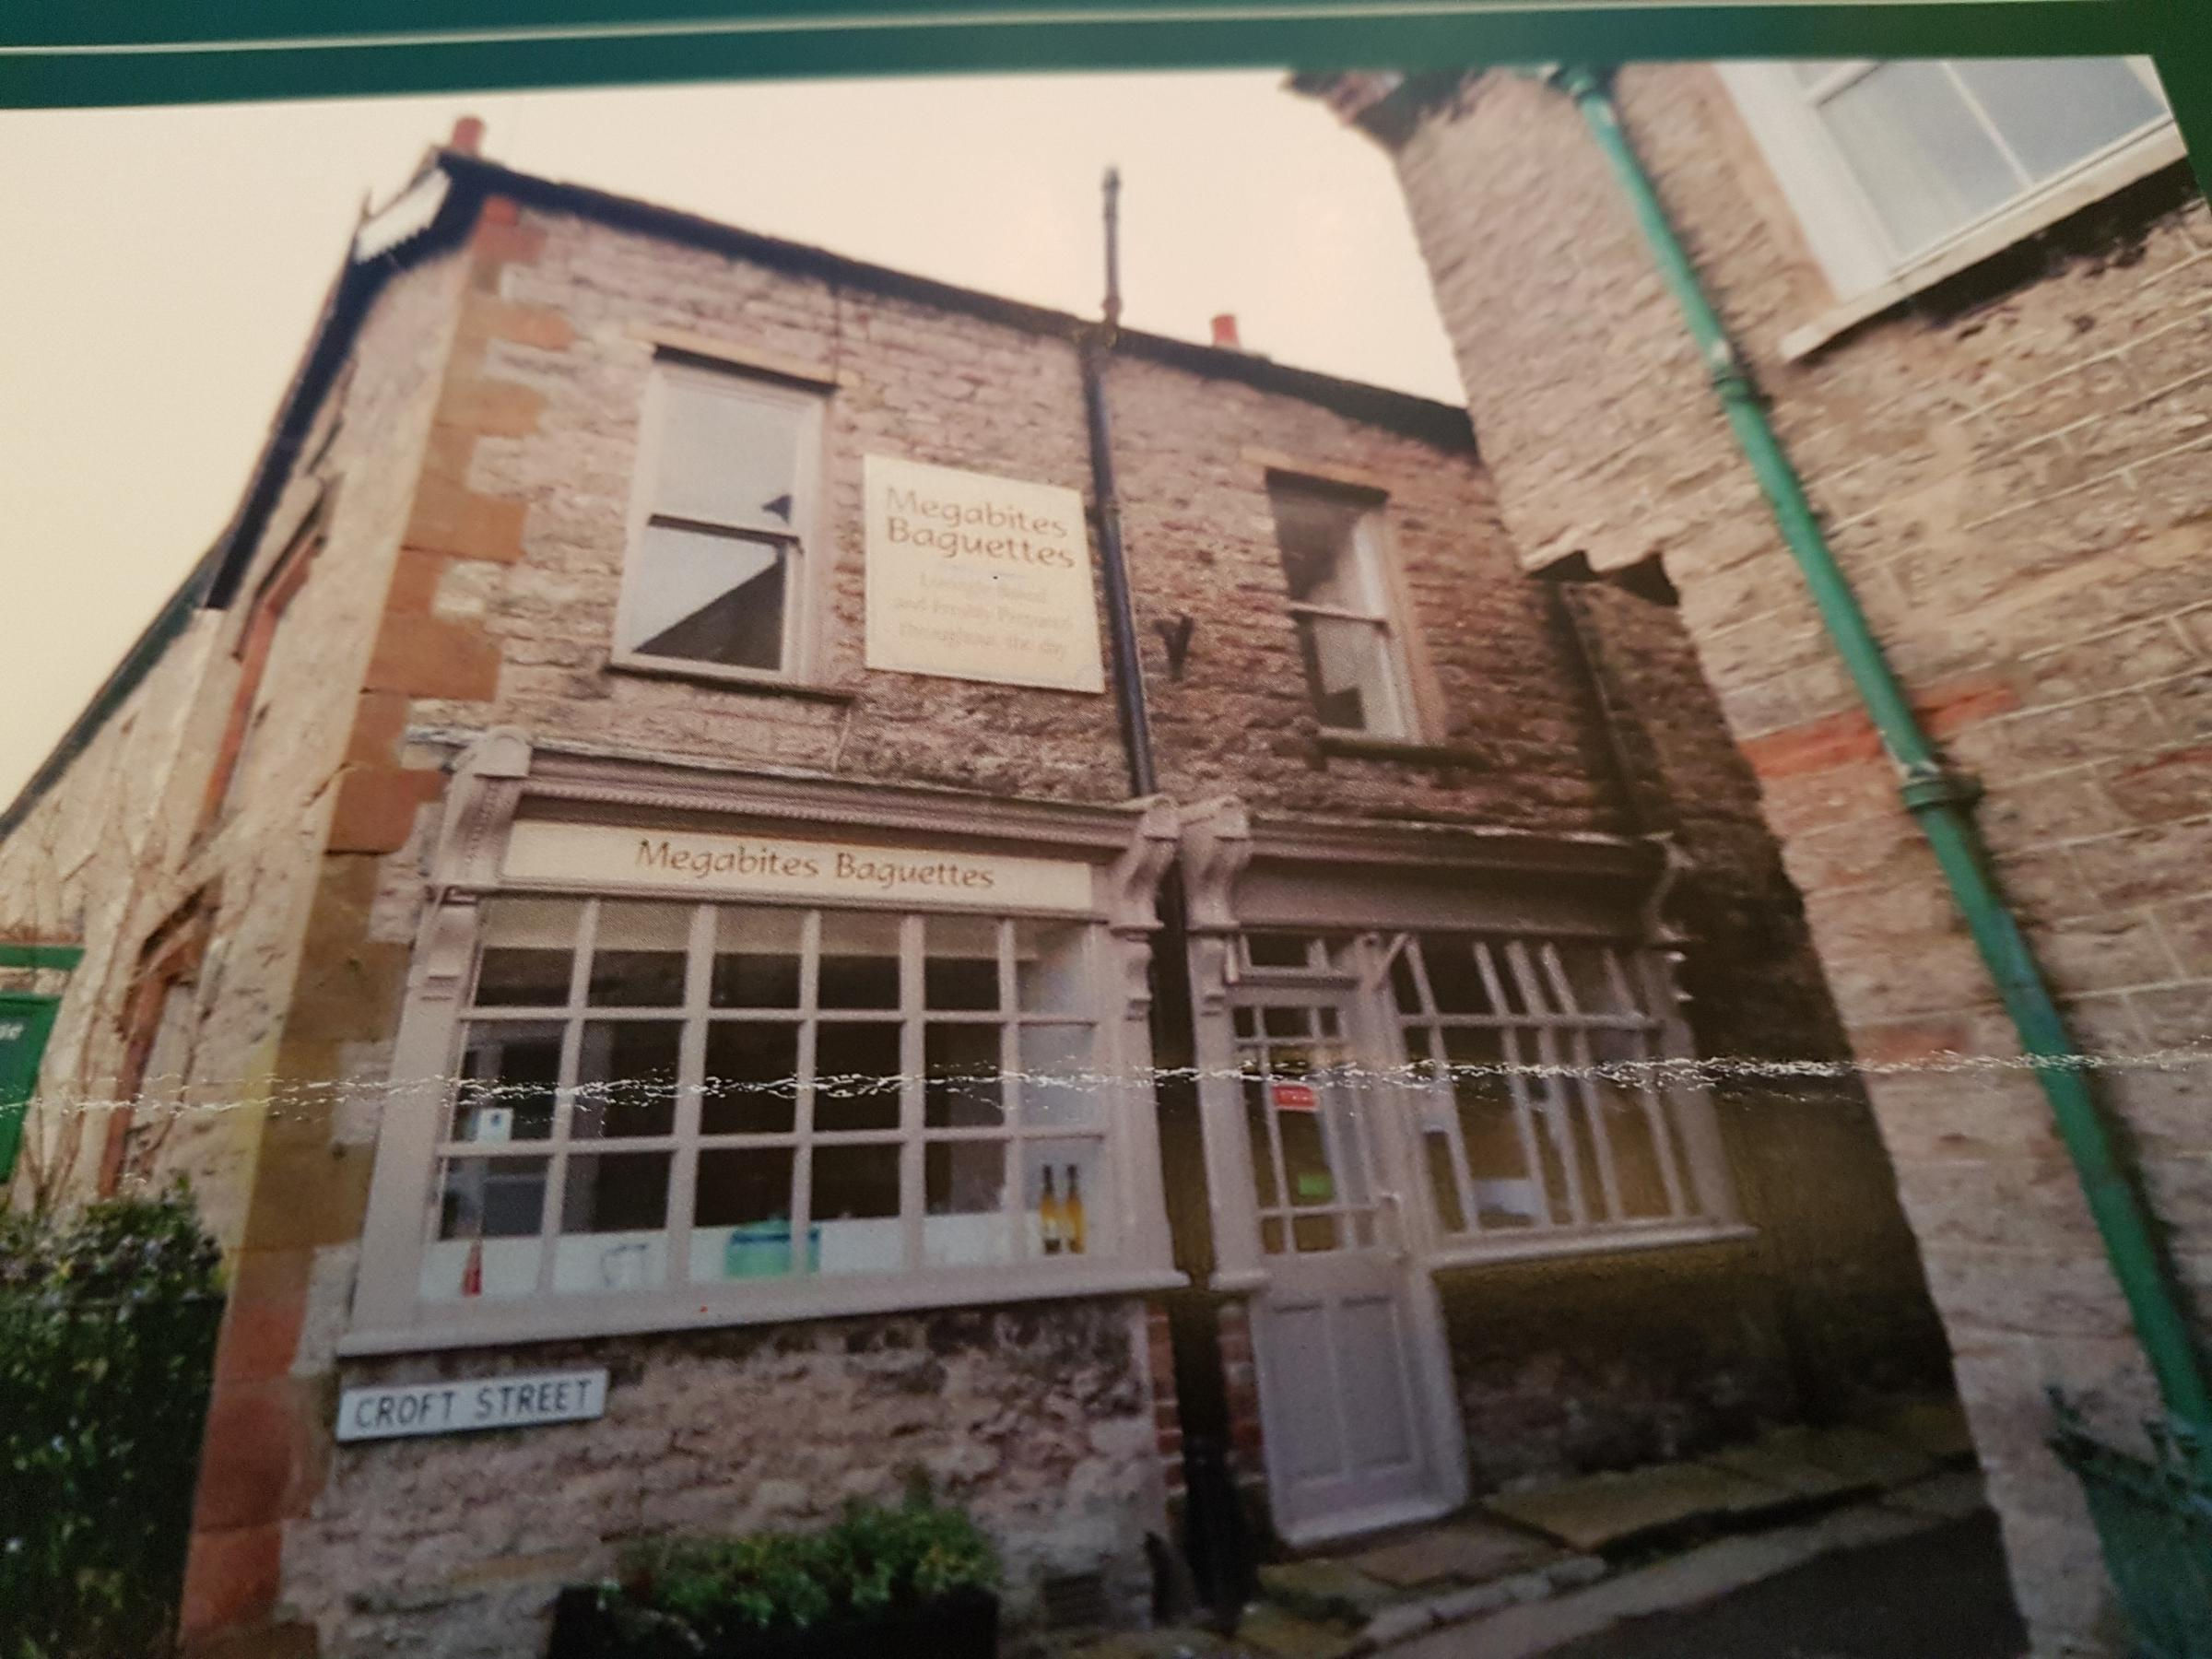 A micro pub is planned for the former sandwich takeaway at Croft Street, Kirkby Stephen (PICTURE: Eden District Council planning portal)